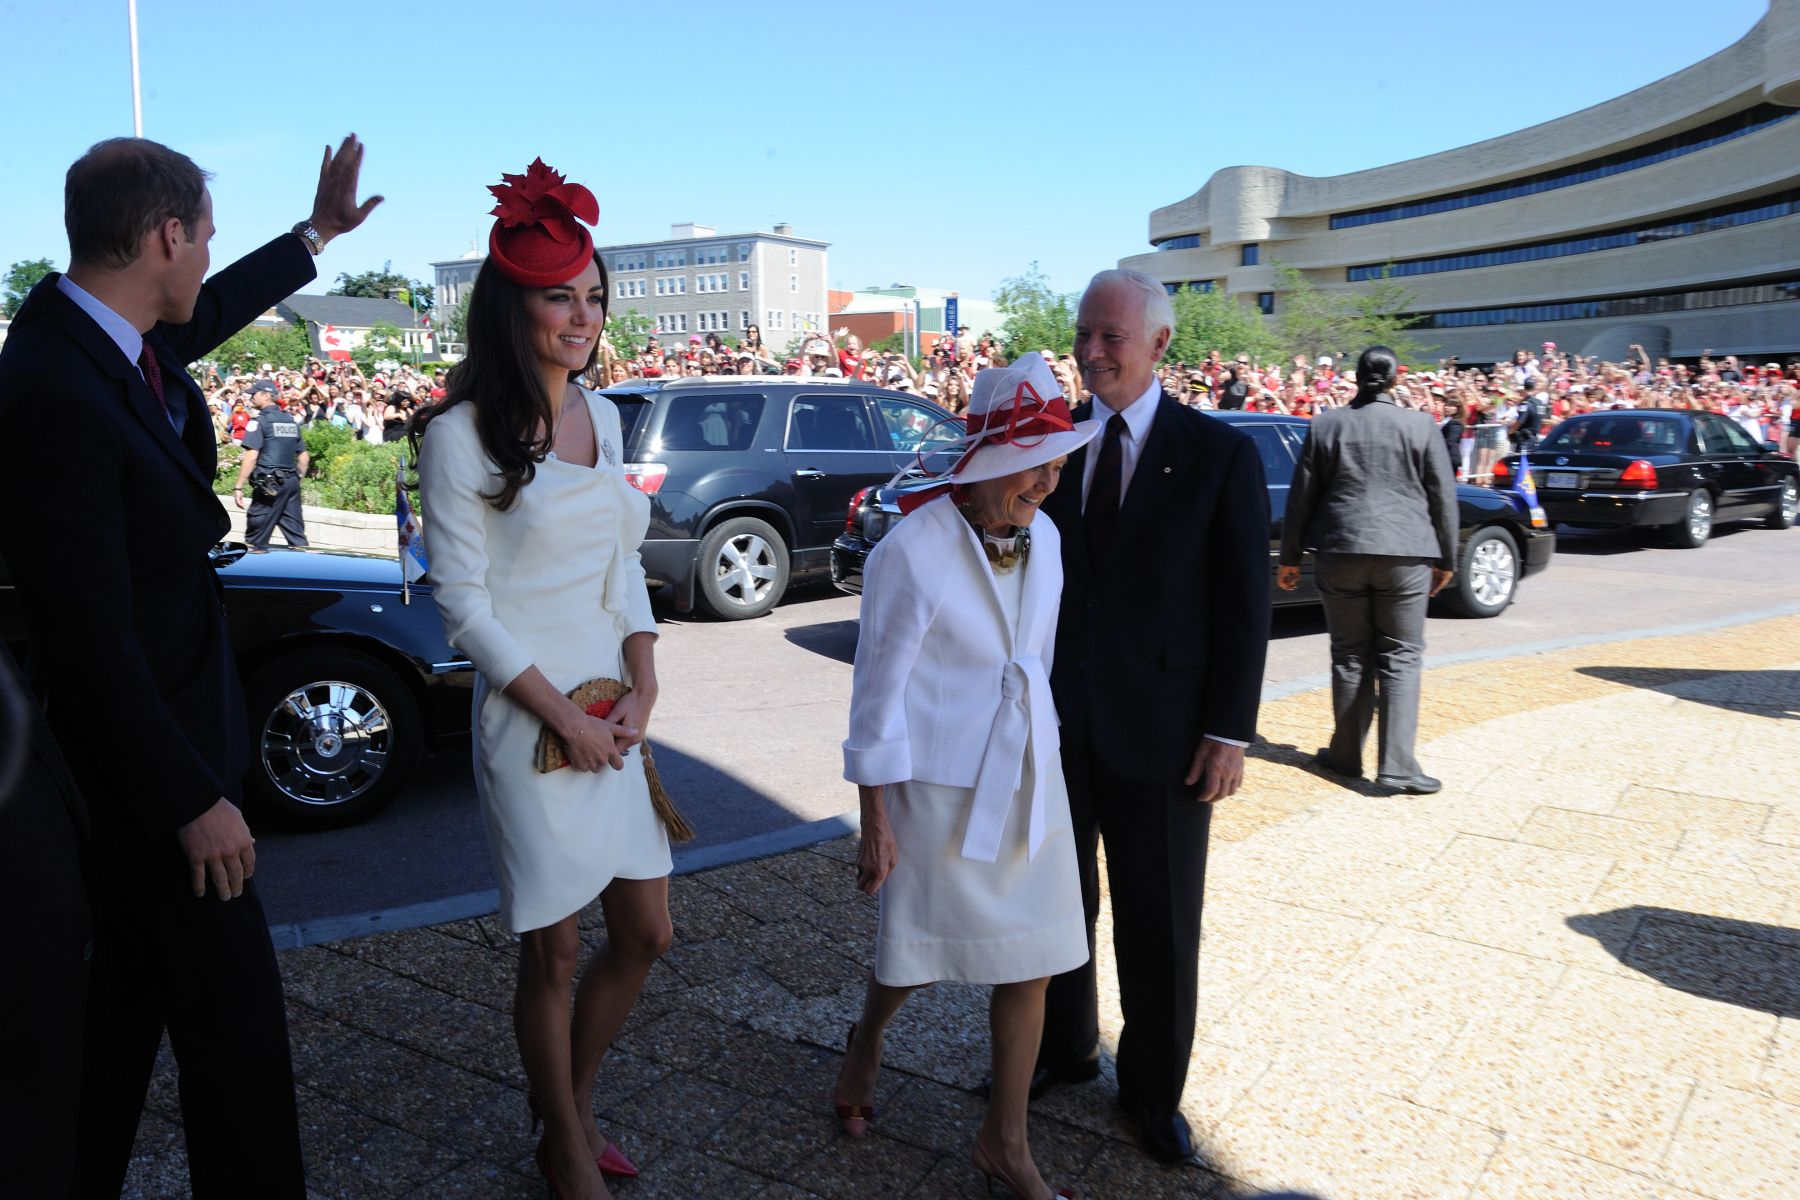 Thousands of Canadians were awaiting the arrival of Their Royal Highnesses The Duke and Duchess of Cambridge and Their Excellencies at the Canadian Museum of Civilisations for the Canada Day Citizenship Ceremony.